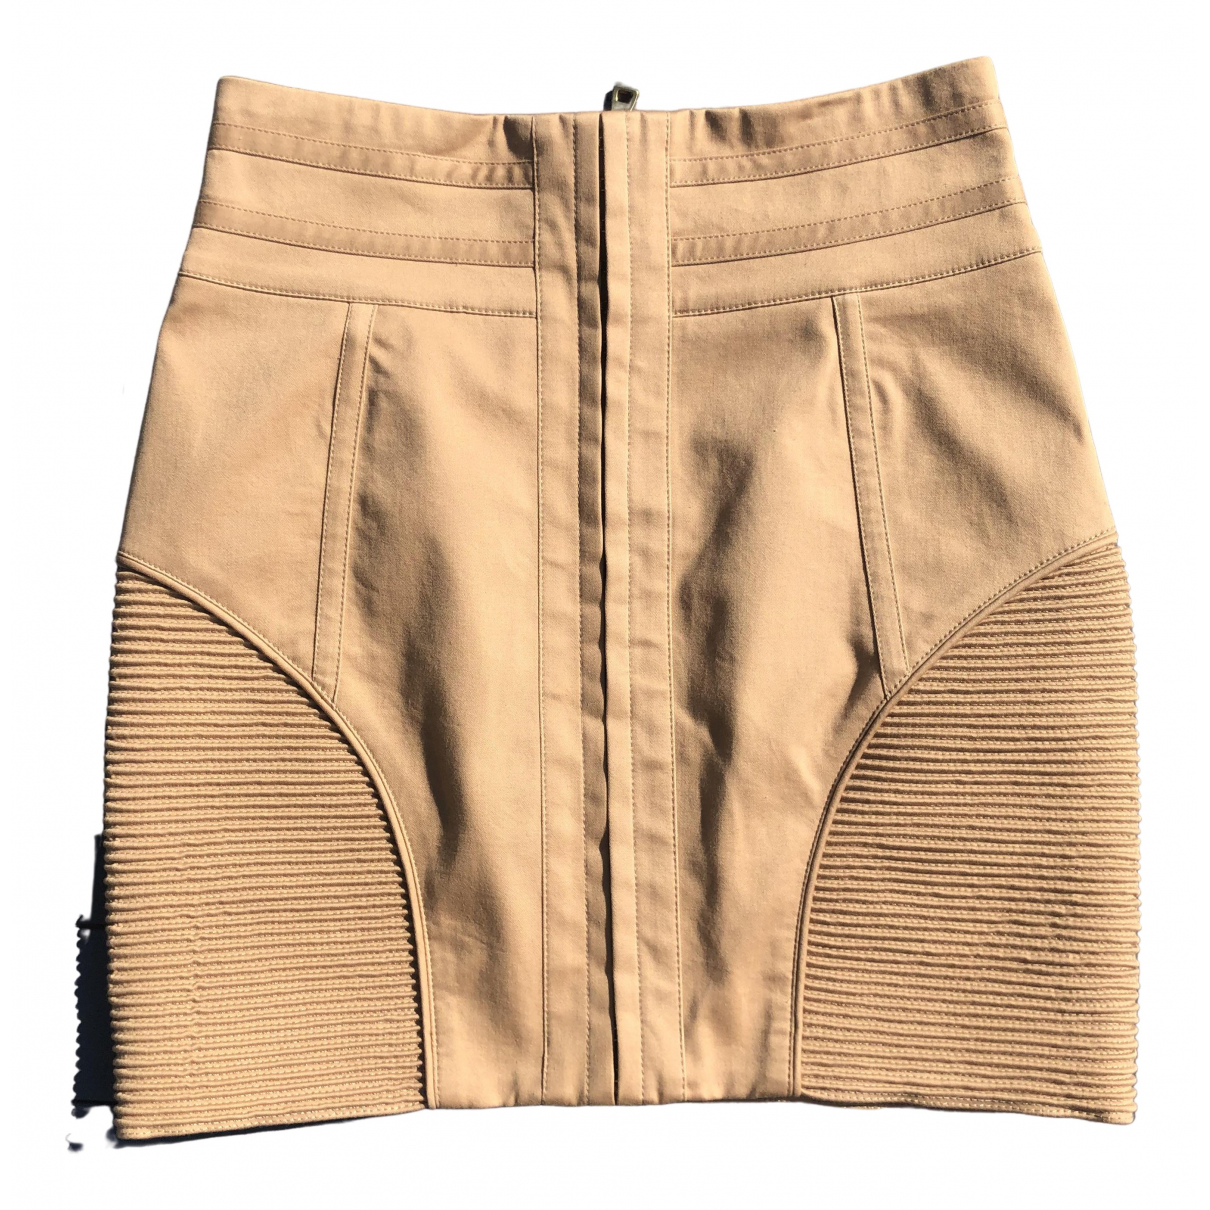 Balmain \N Beige Cotton - elasthane skirt for Women 40 FR